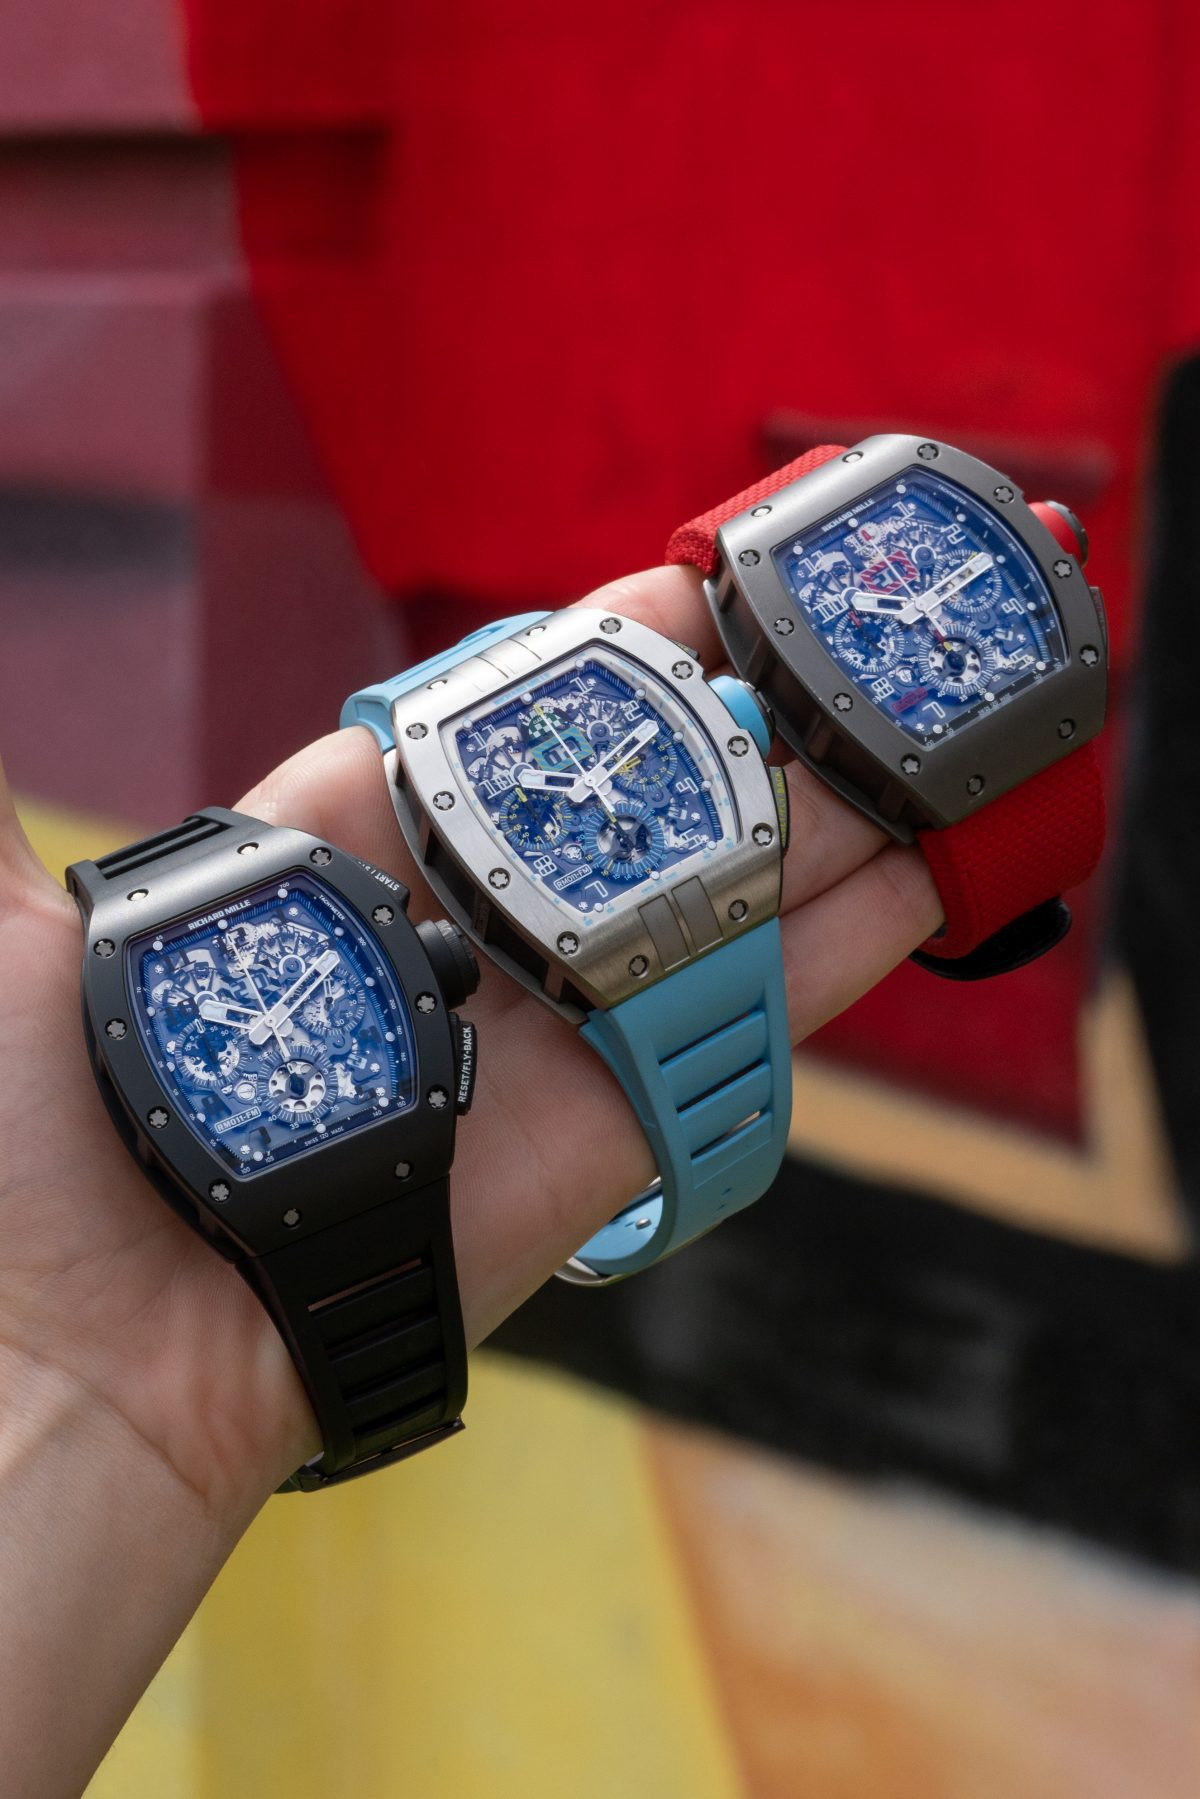 An early model of Richard Mille timepieces